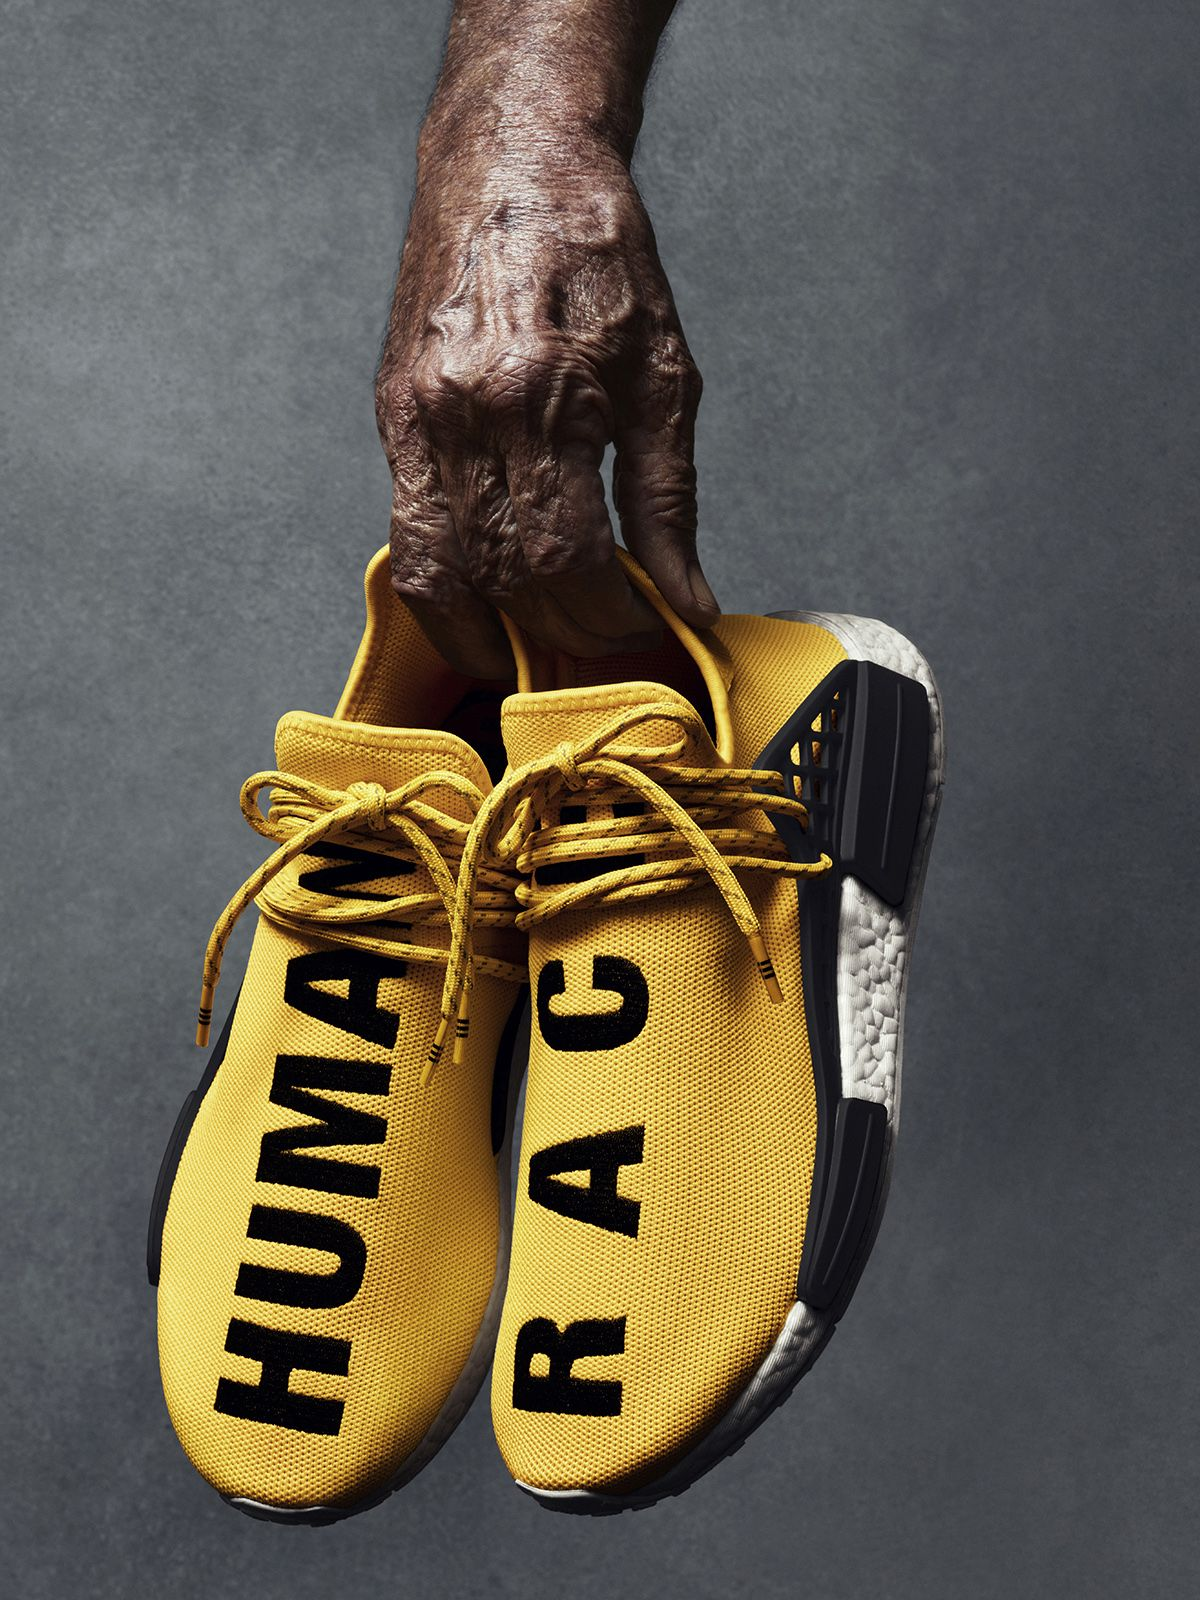 Adidas Original x Pharrell Williams Hu NMD Human Race (Black